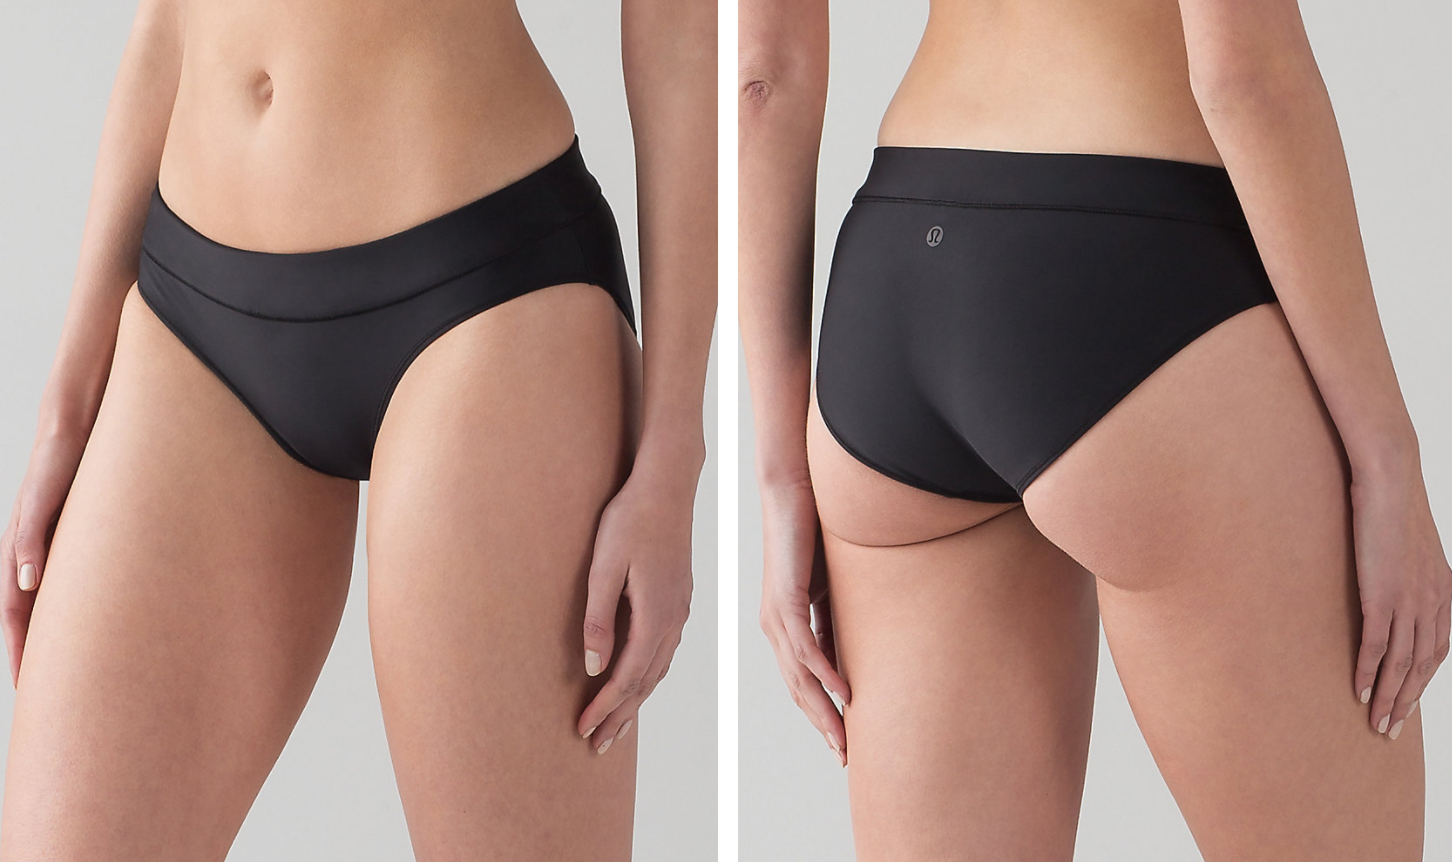 https://shop.lululemon.com/p/bottoms-swim/Tidal-Flow-Full-Bottom-II/_/prod8430837?rcnt=49&N=1z13ziiZ7vf&cnt=75&color=LW7ADIS_0001